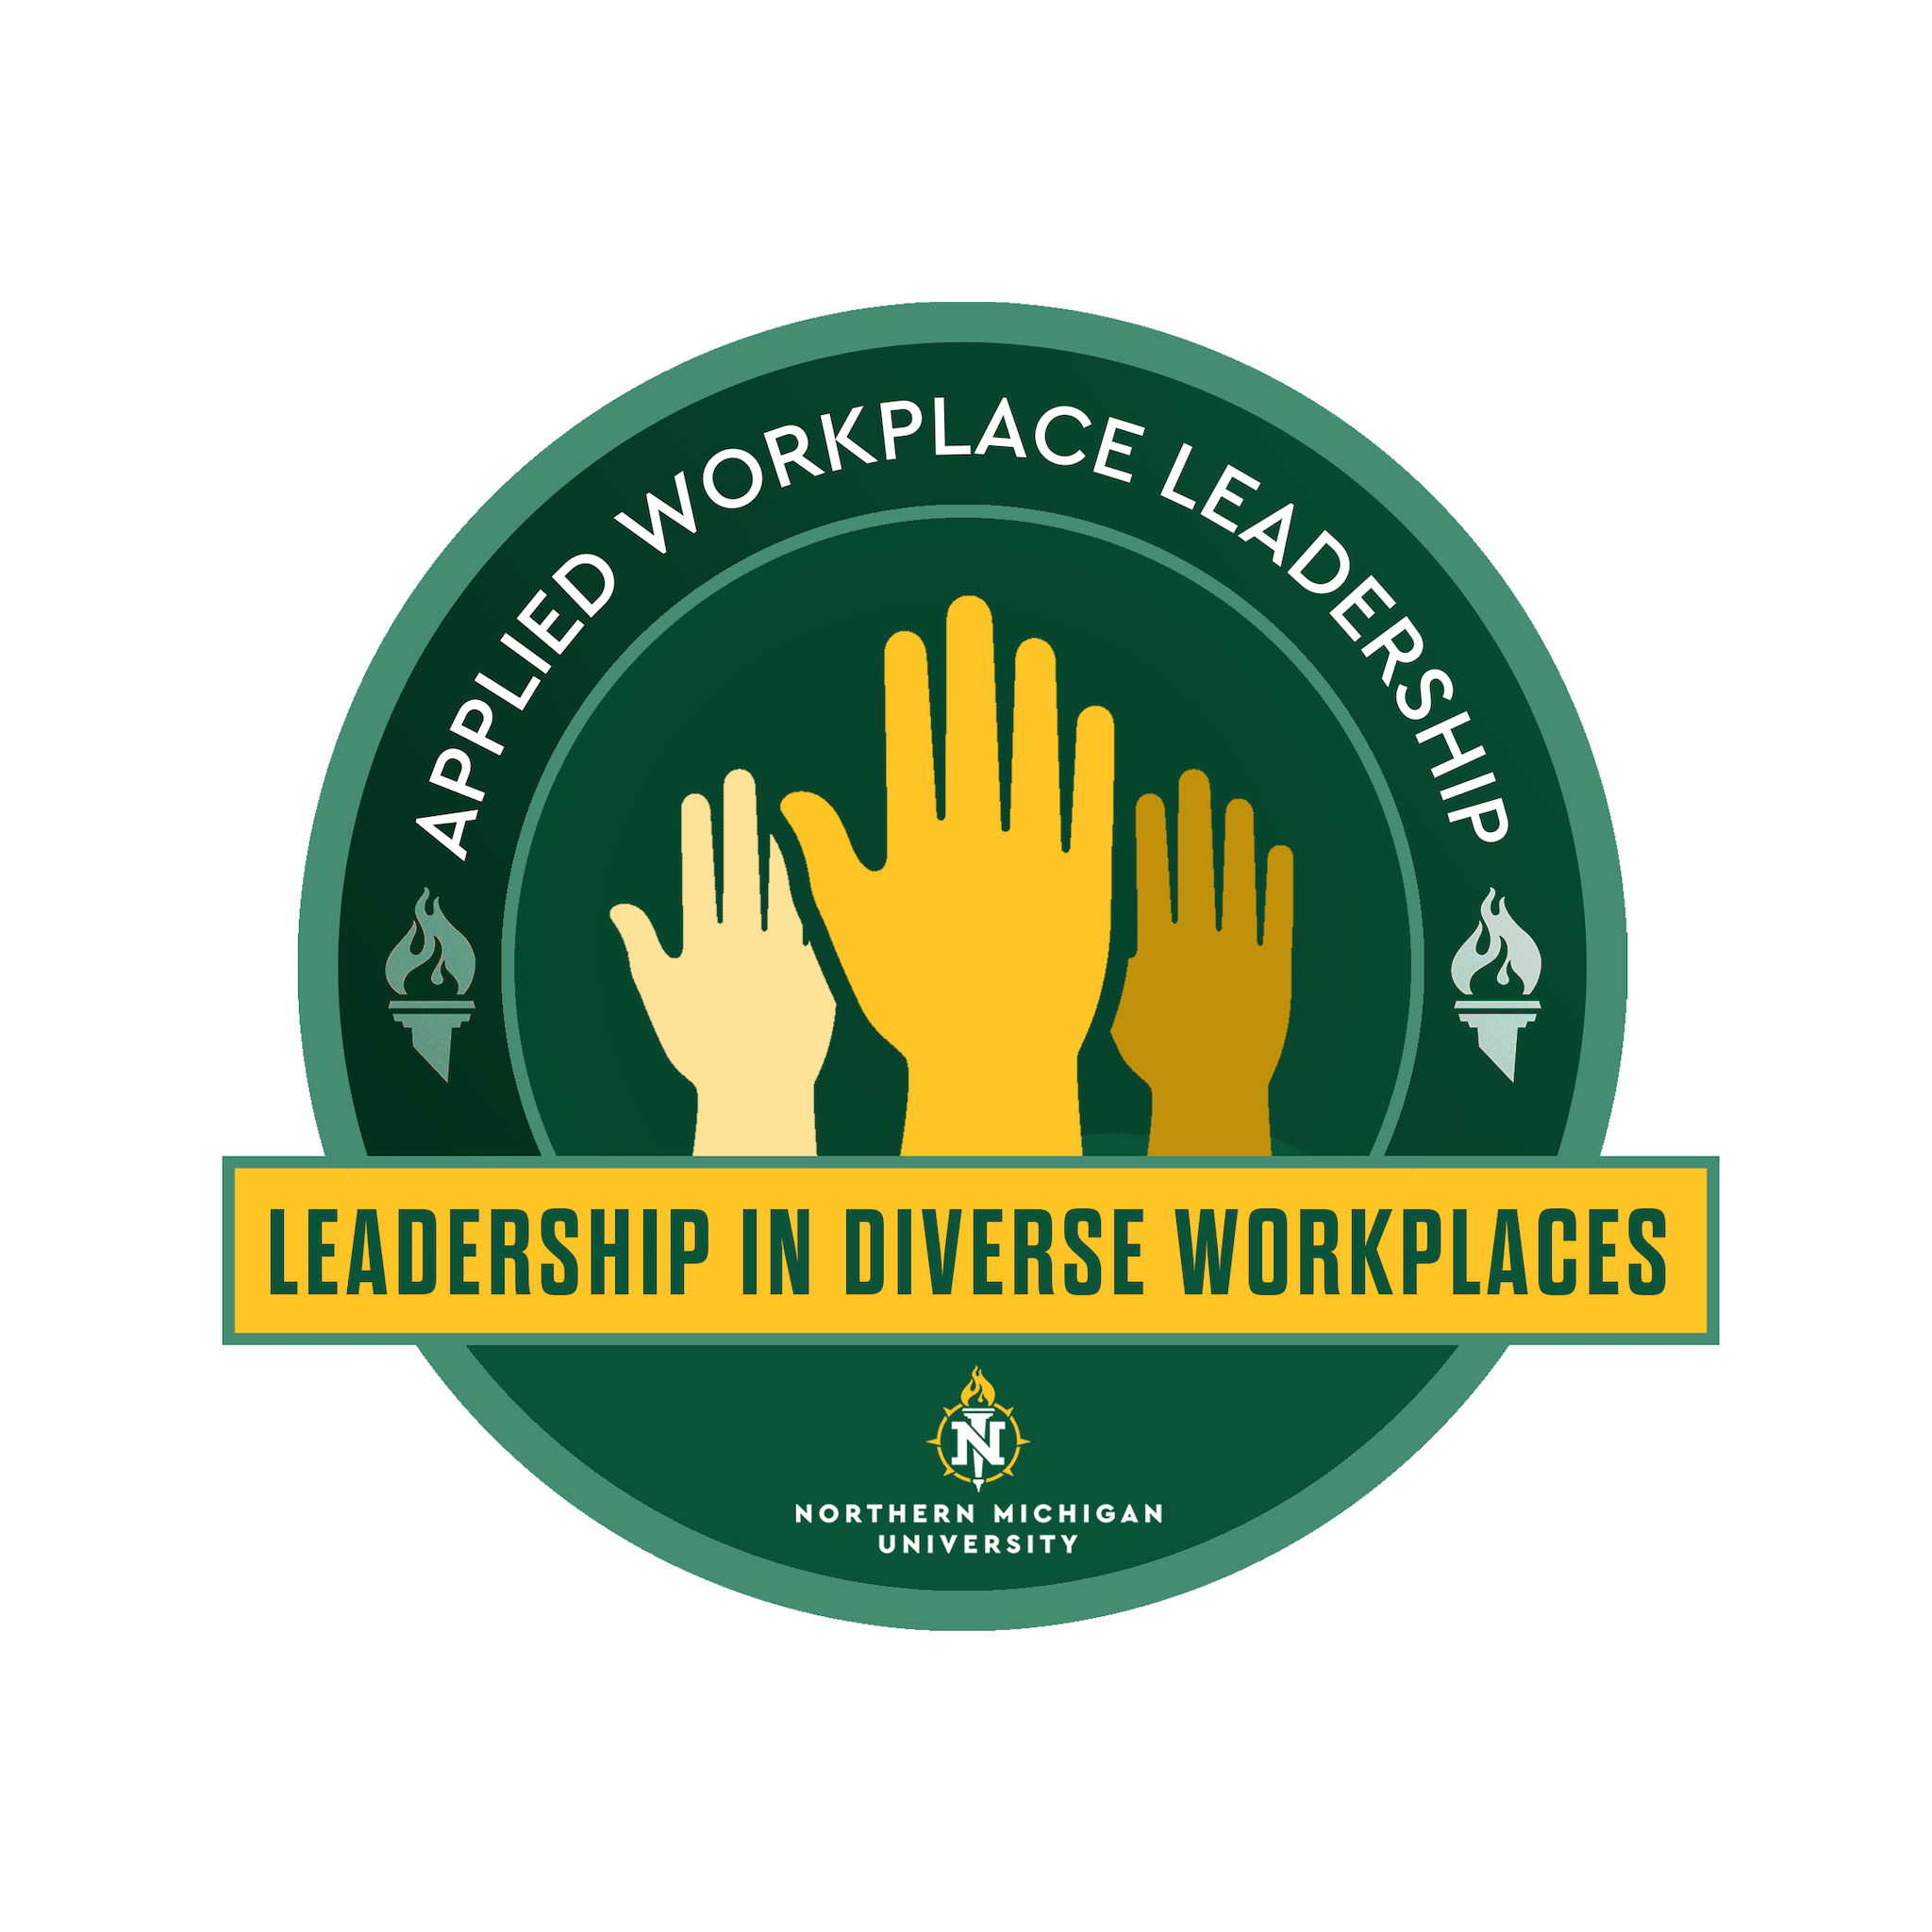 Leadership in Diverse Workplaces - LDR 300